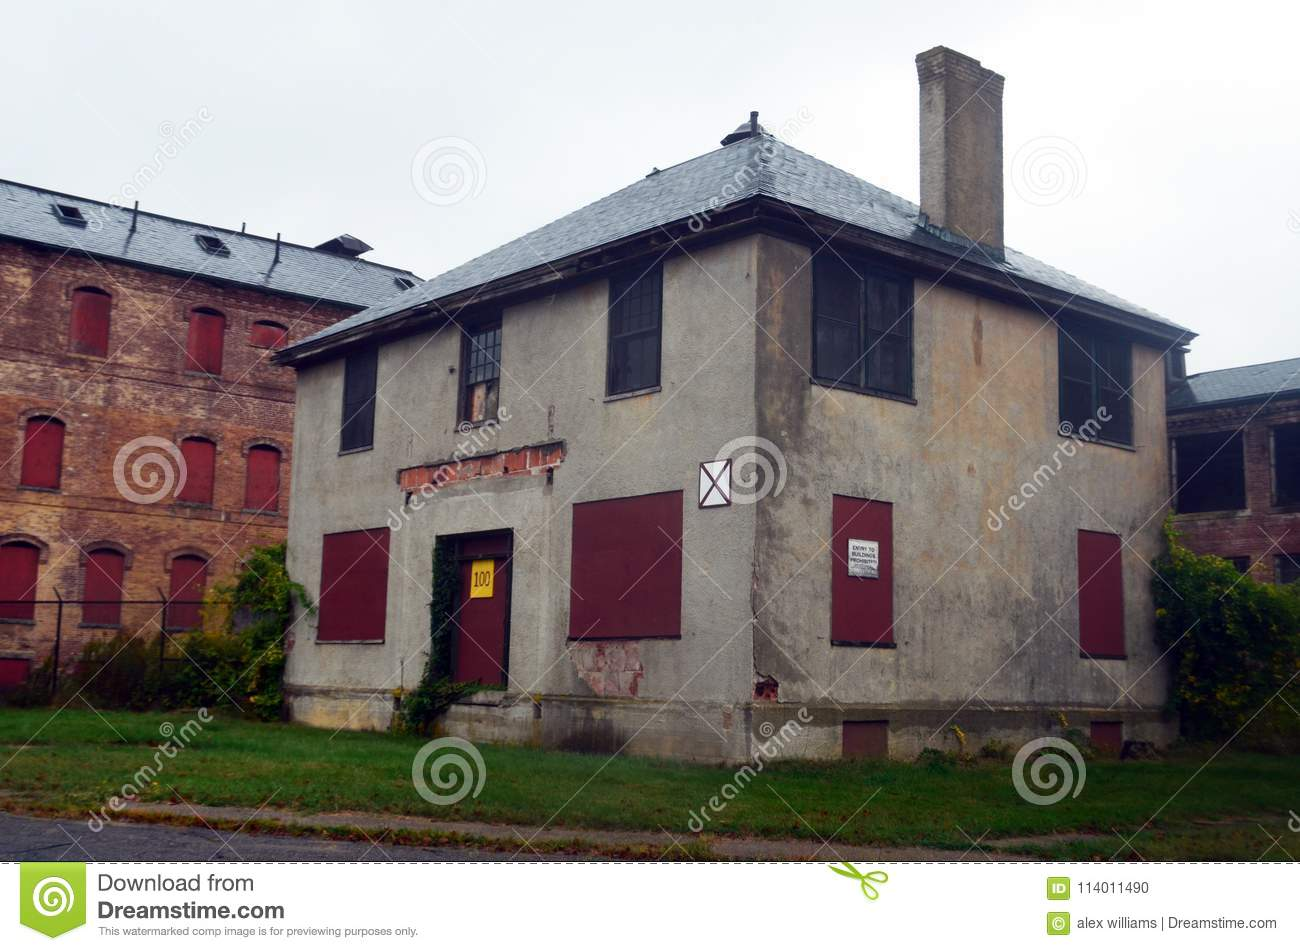 Exterior Of Boarded Up And Abandoned Brick Asylum Hospital Building With Broken Windows Stock Photo Image Of Abandoned Campus 114011490